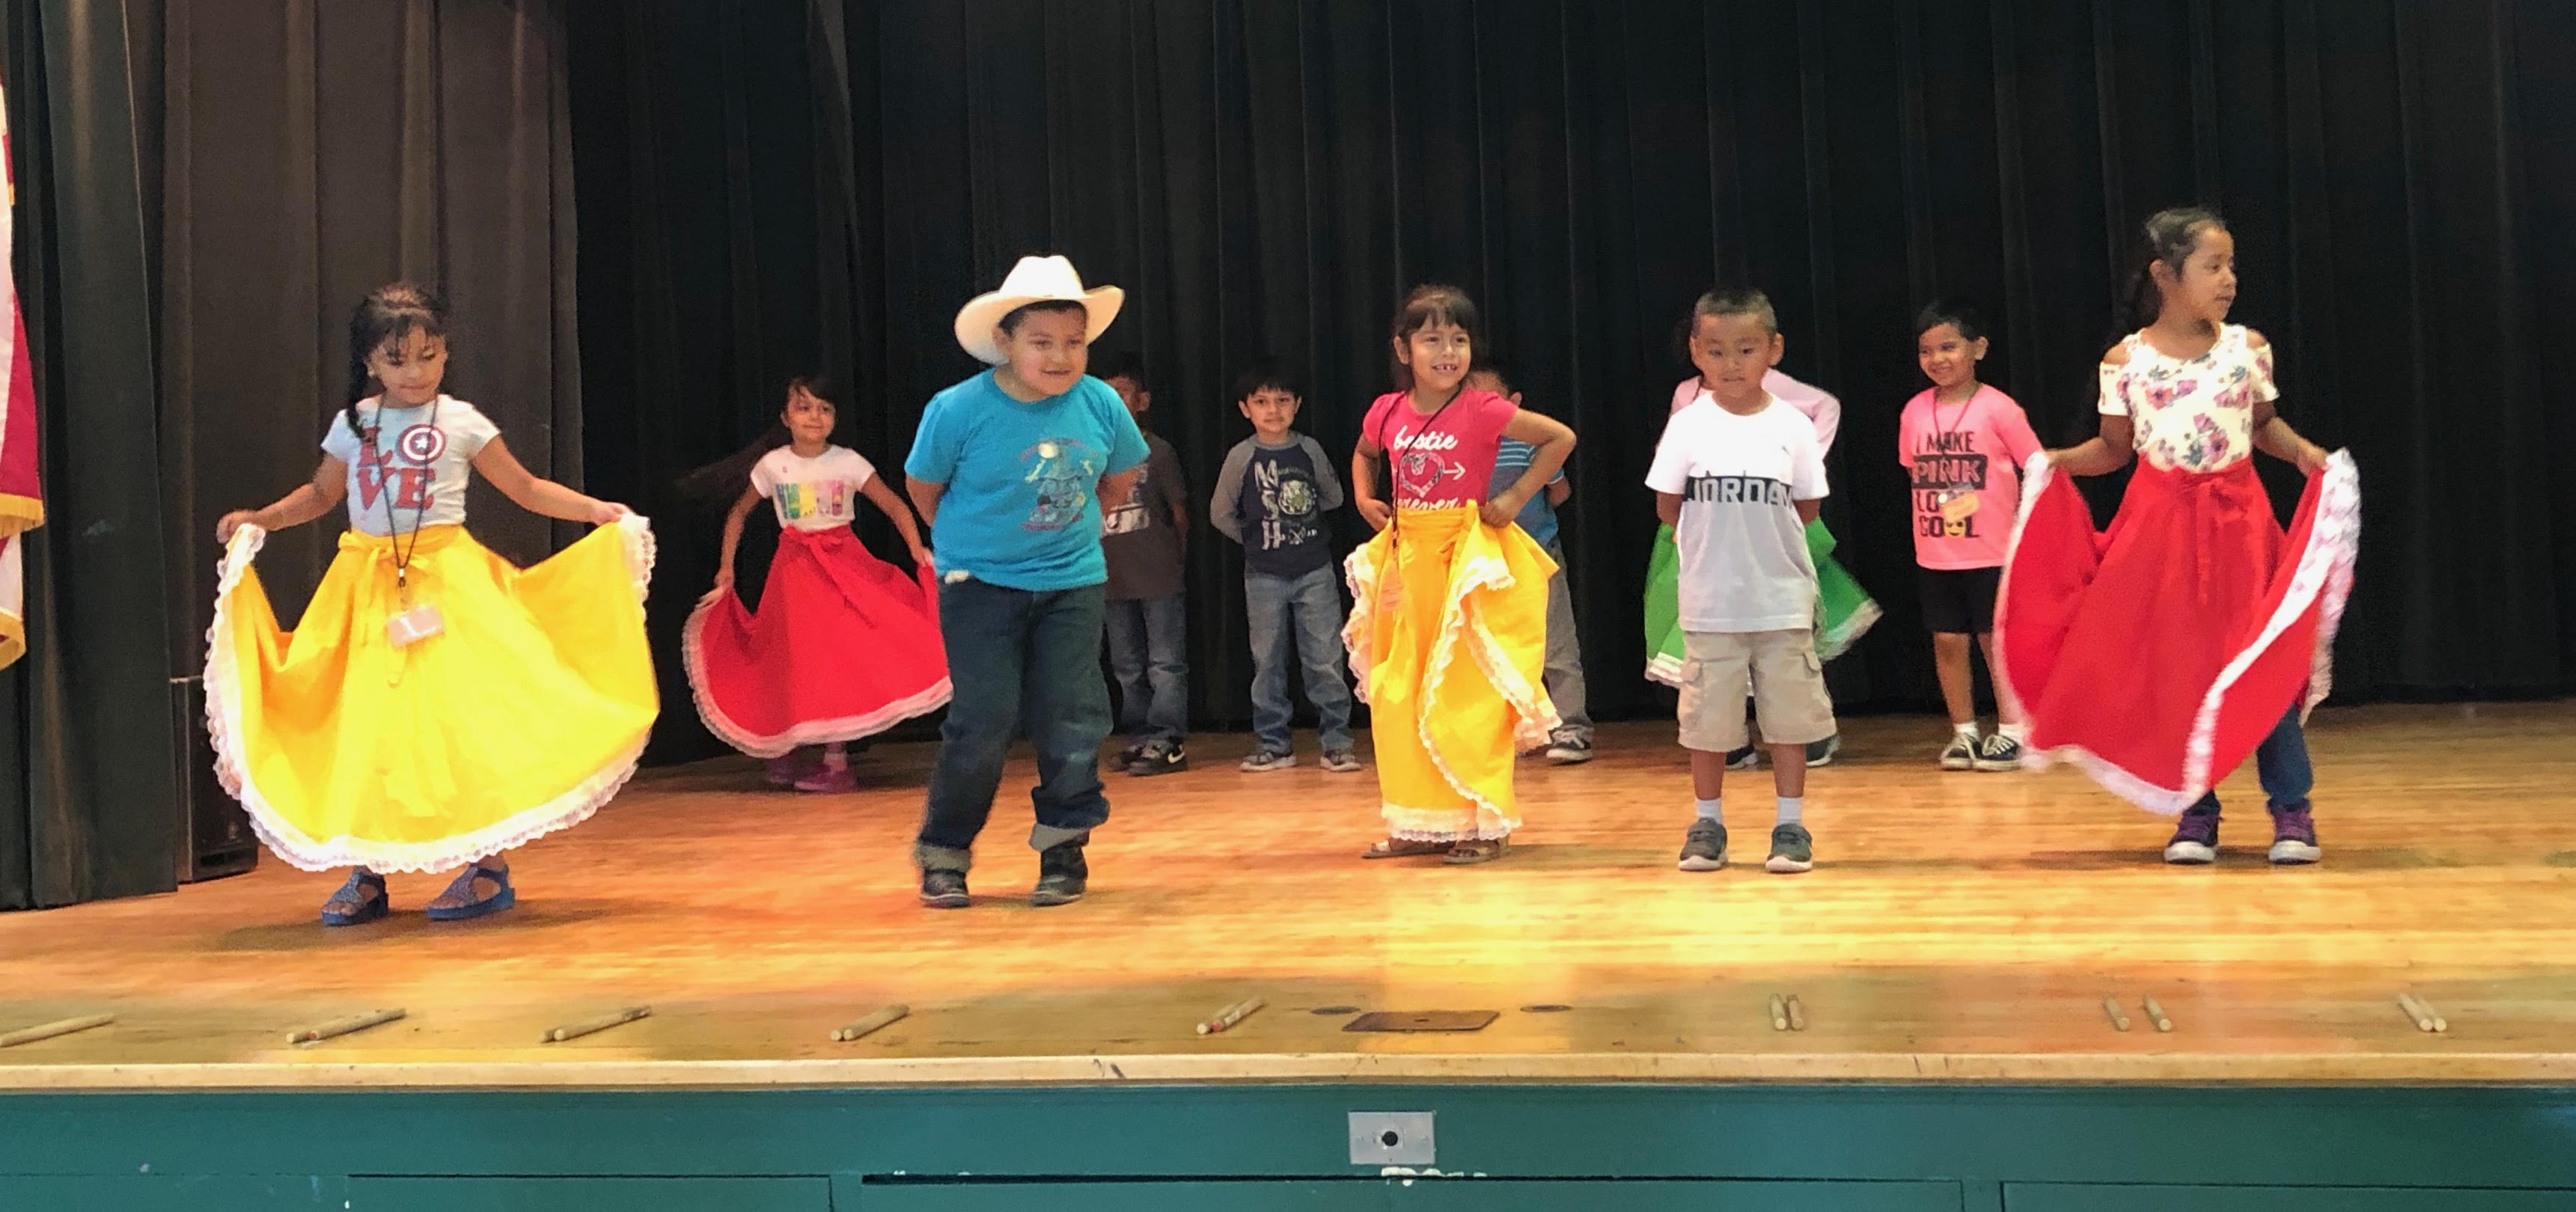 West Fresno Students Participate in Summer School Folklorico